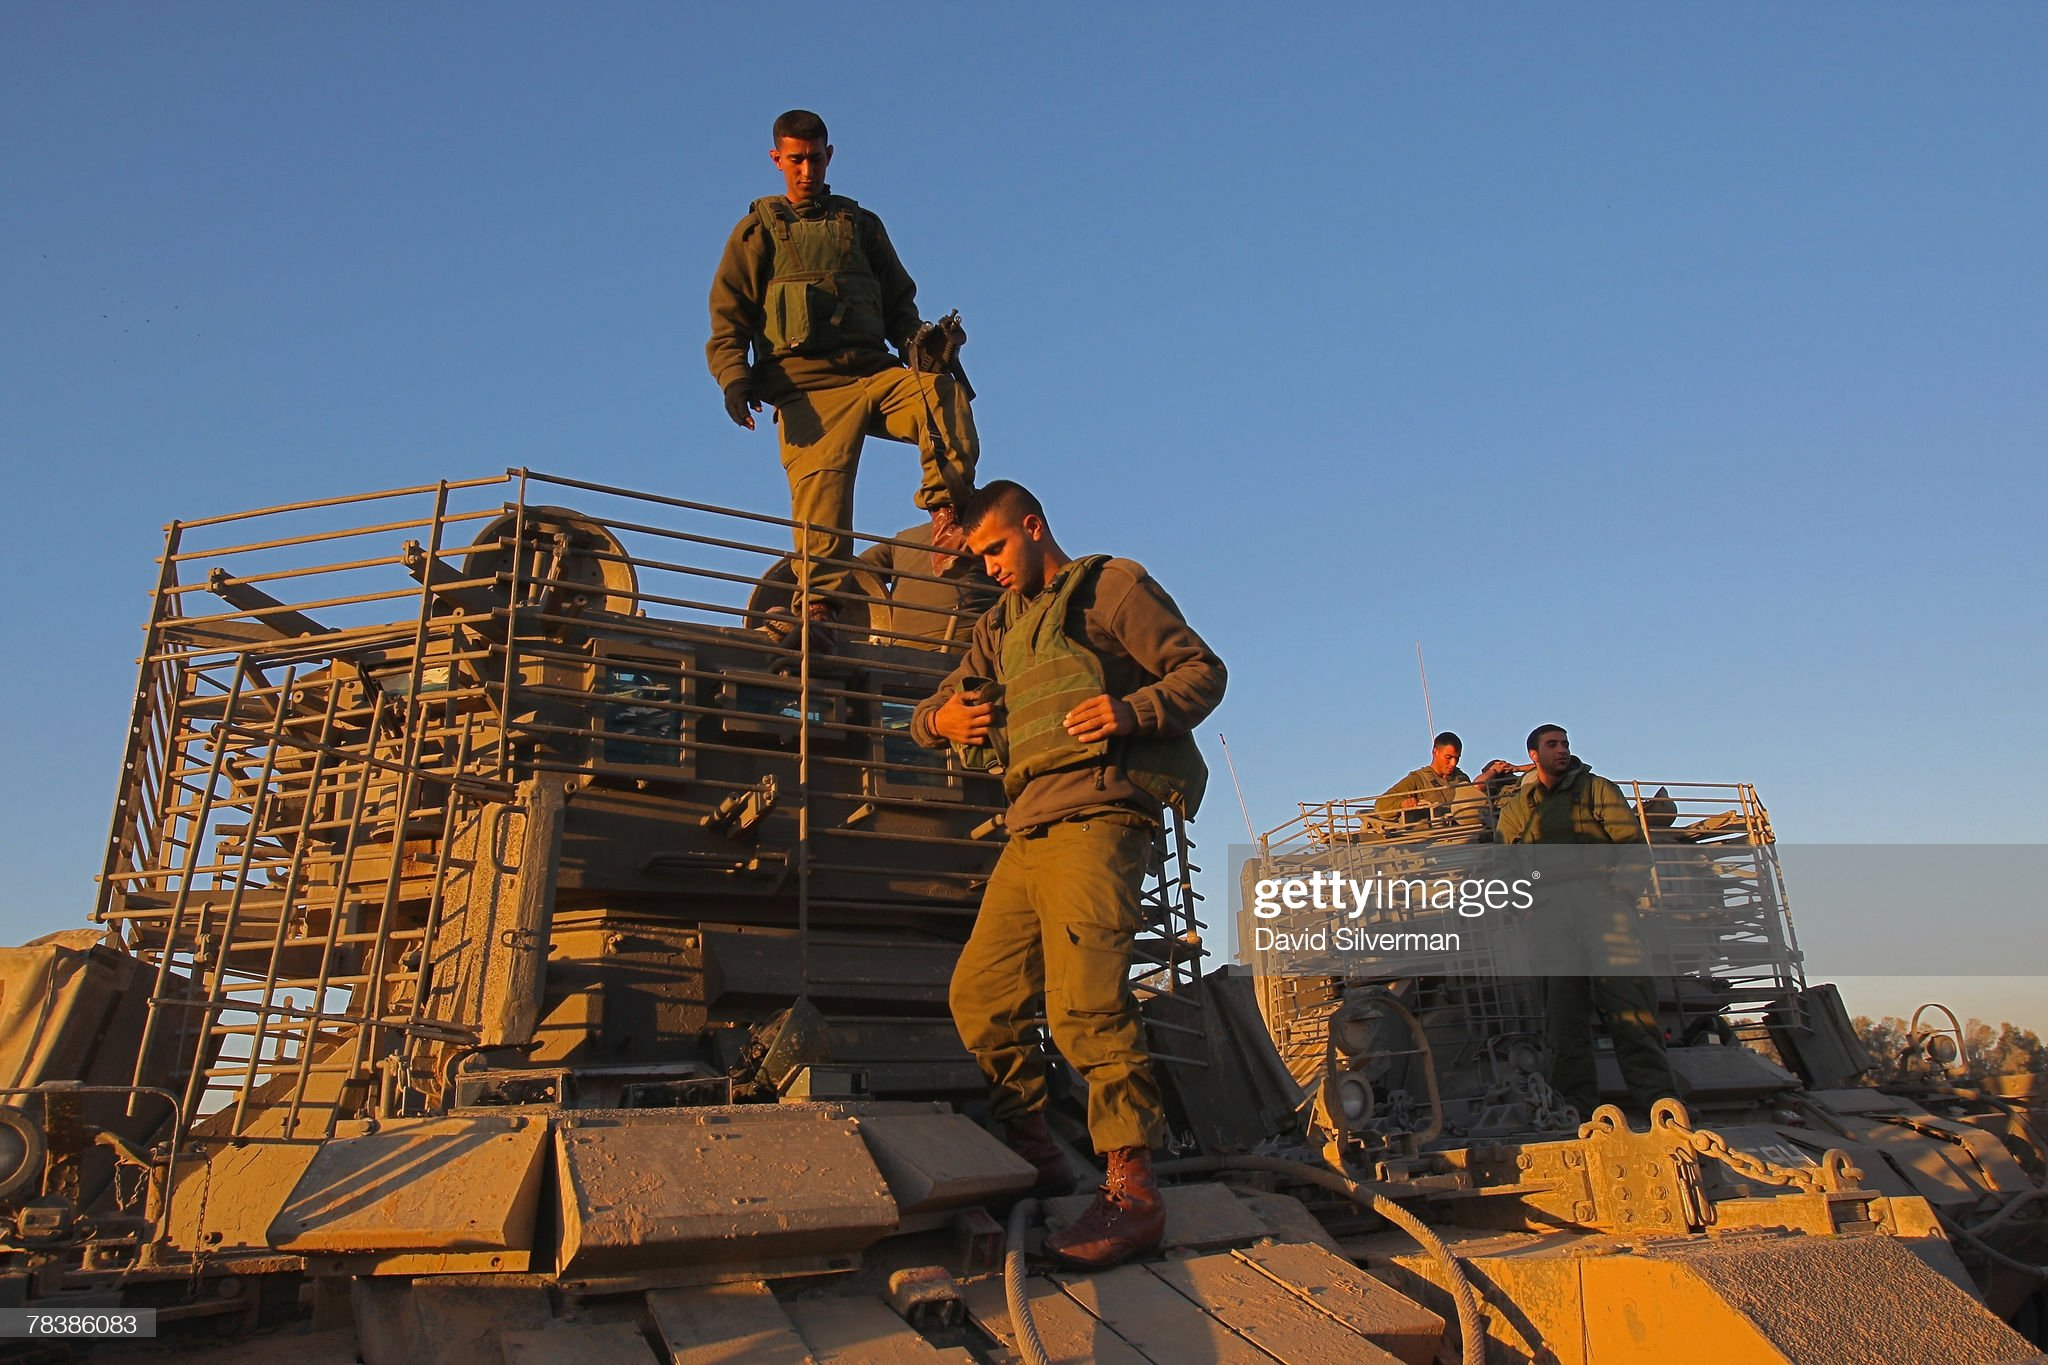 https://media.gettyimages.com/photos/israeli-troops-dismount-their-armoured-fighting-vehicles-on-returning-picture-id78386083?s=2048x2048